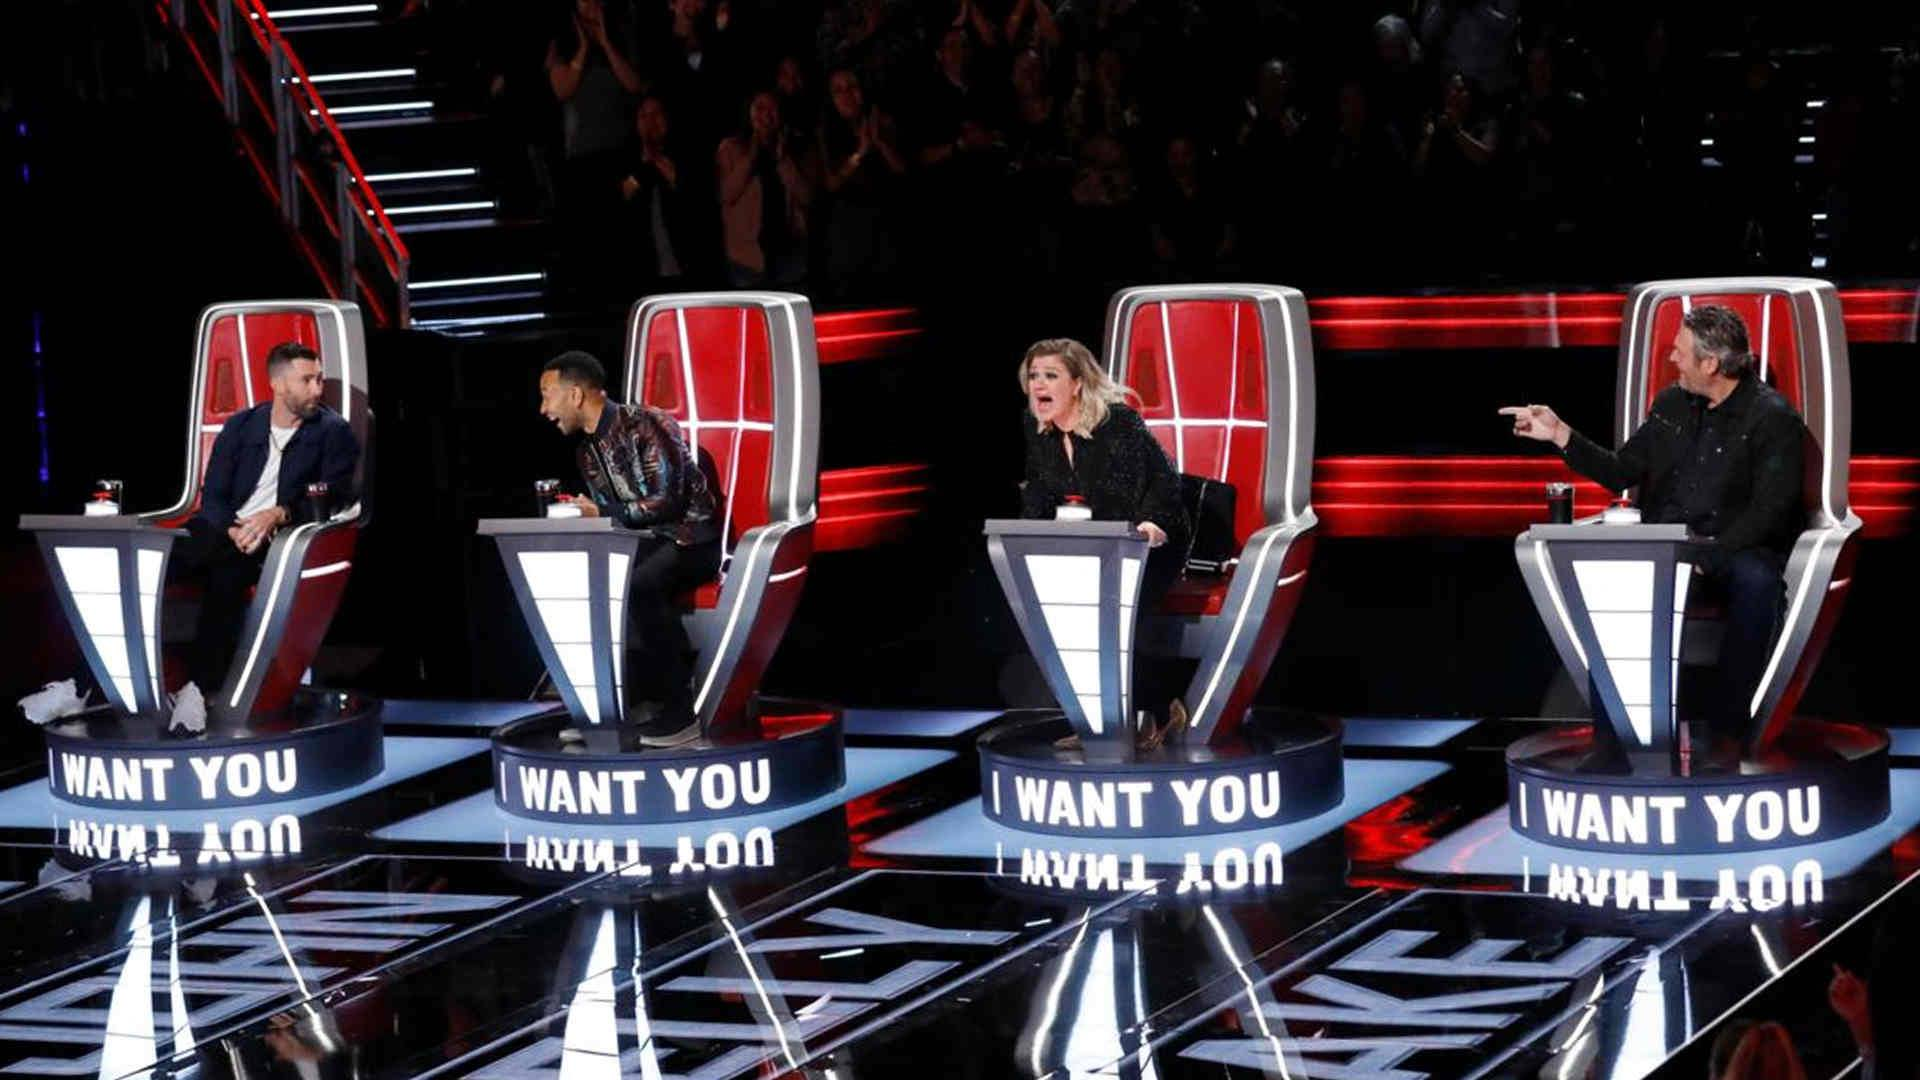 Watch the Voice USA 2019 Season 16 Blind Audition Full Episode 18 March 2019 Video